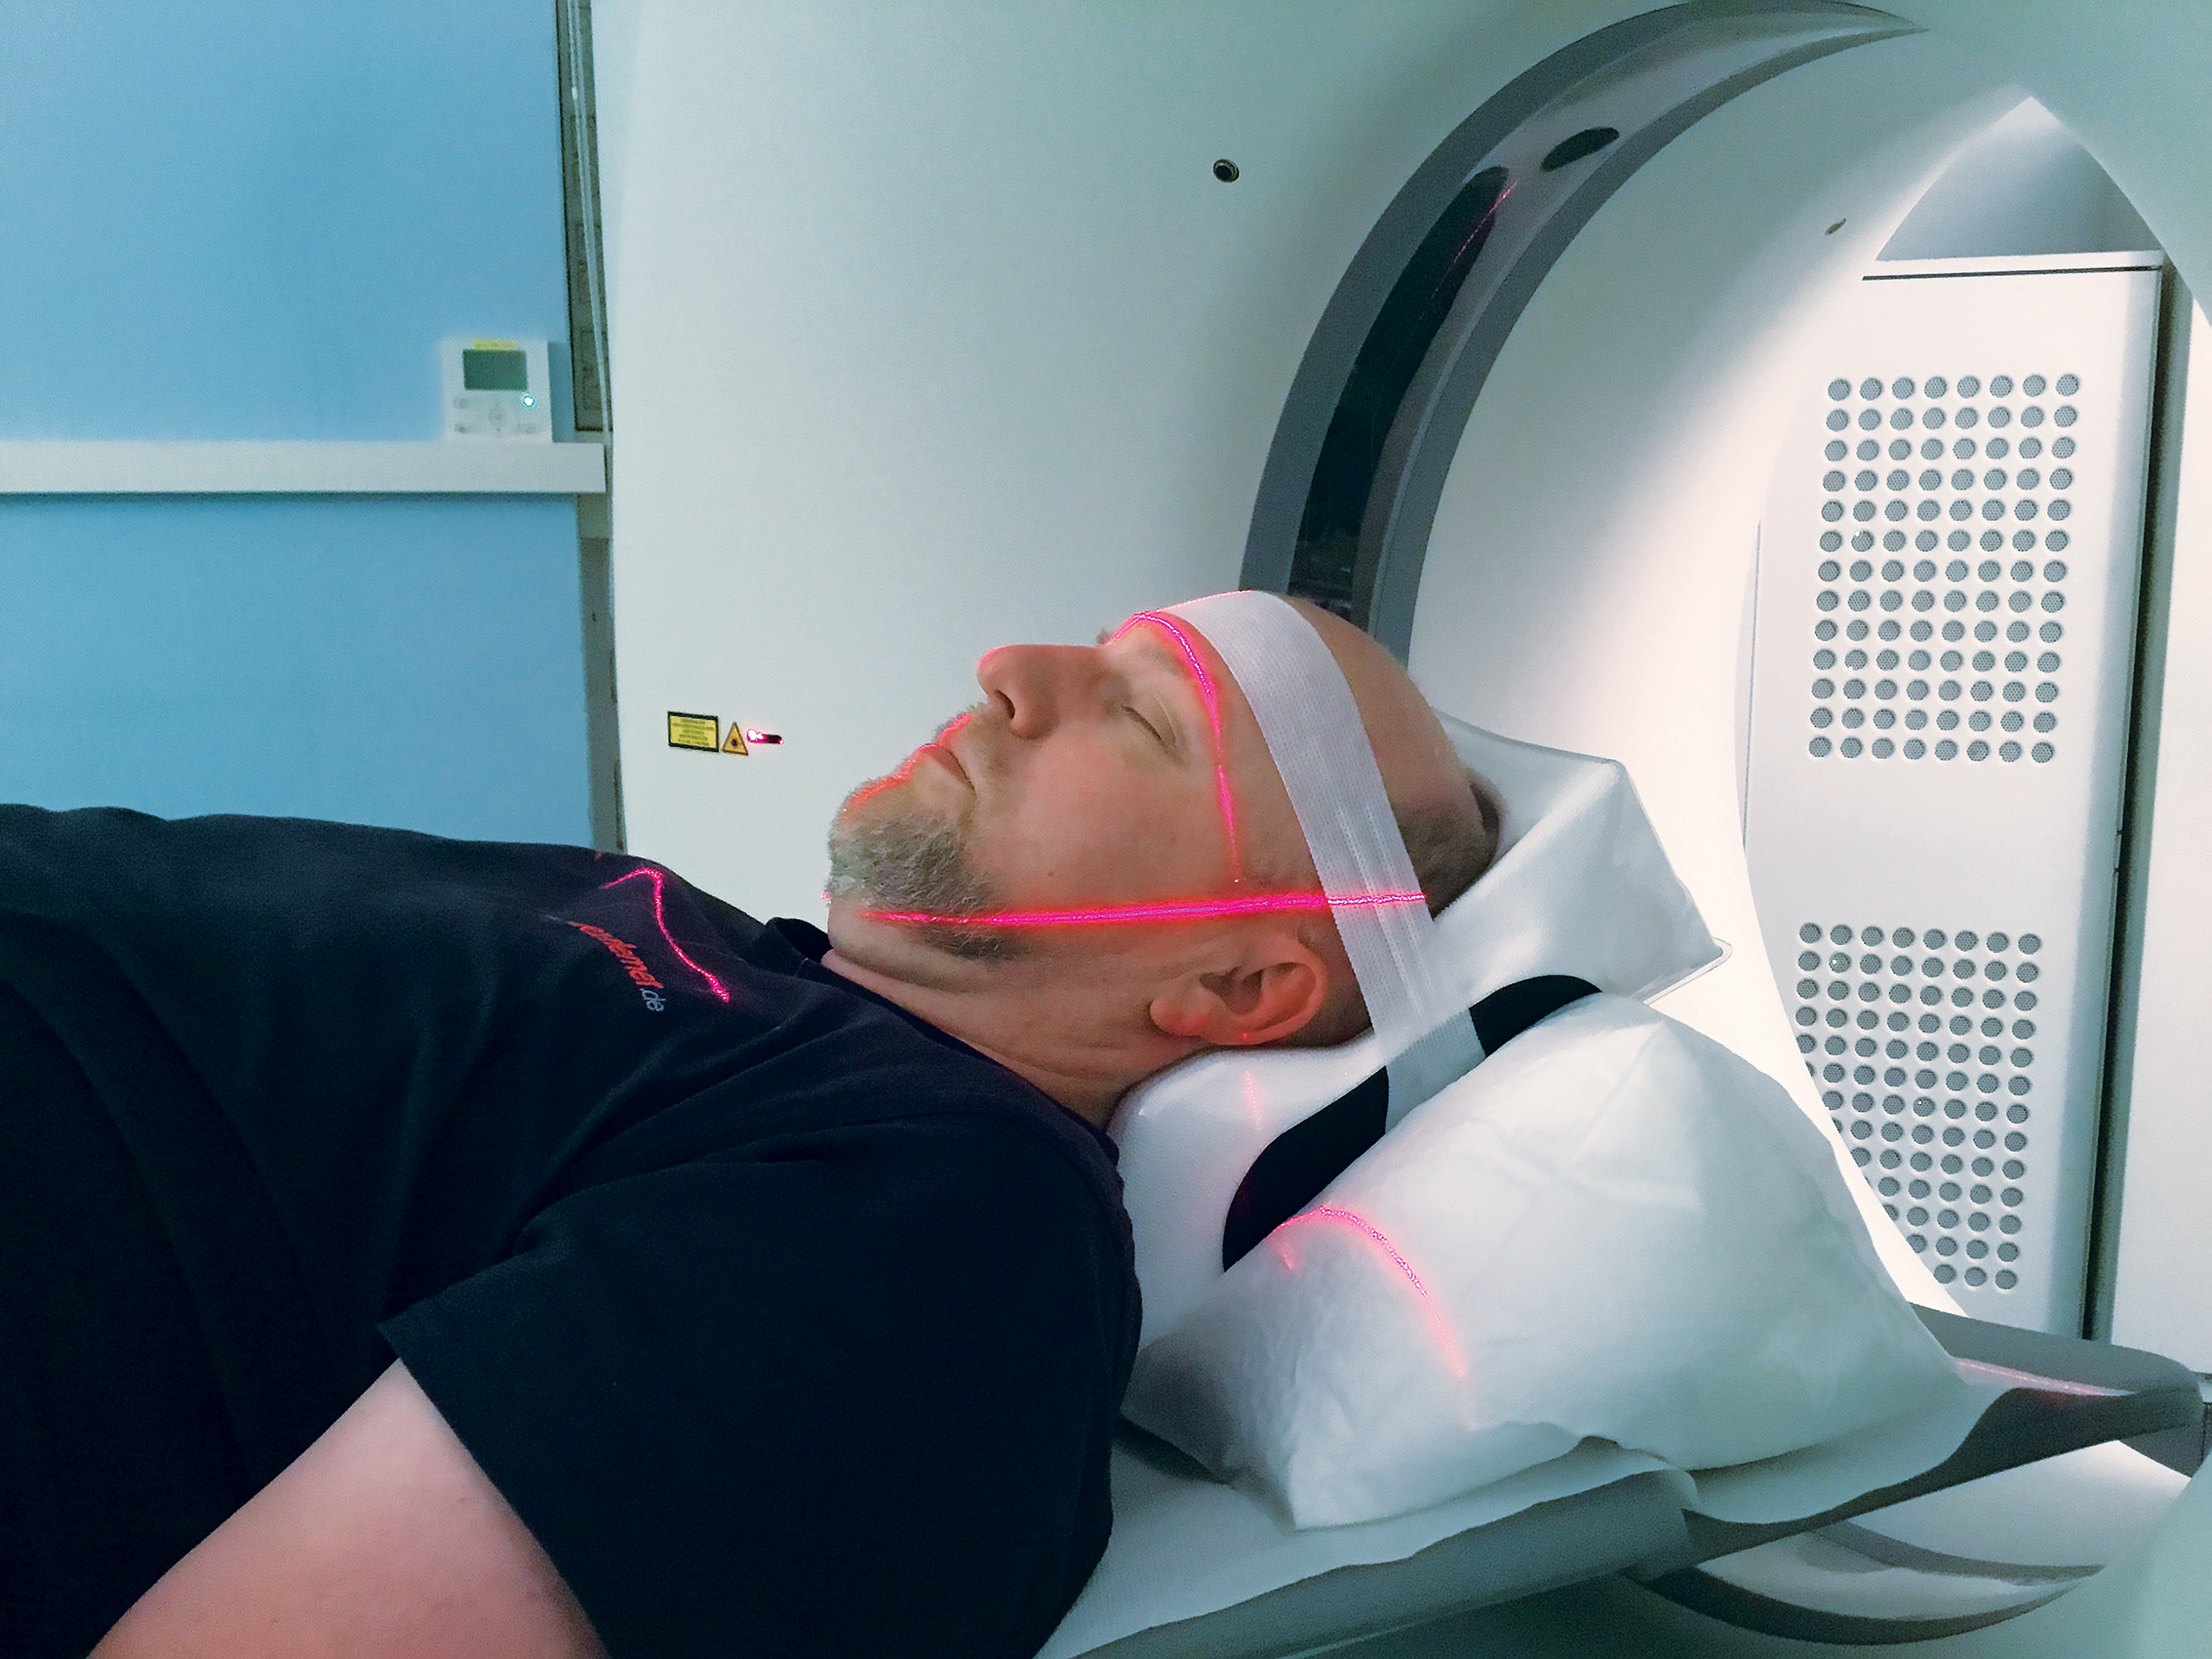 Head Fixation during CT Scan using PearlFit Head/Neck Vac